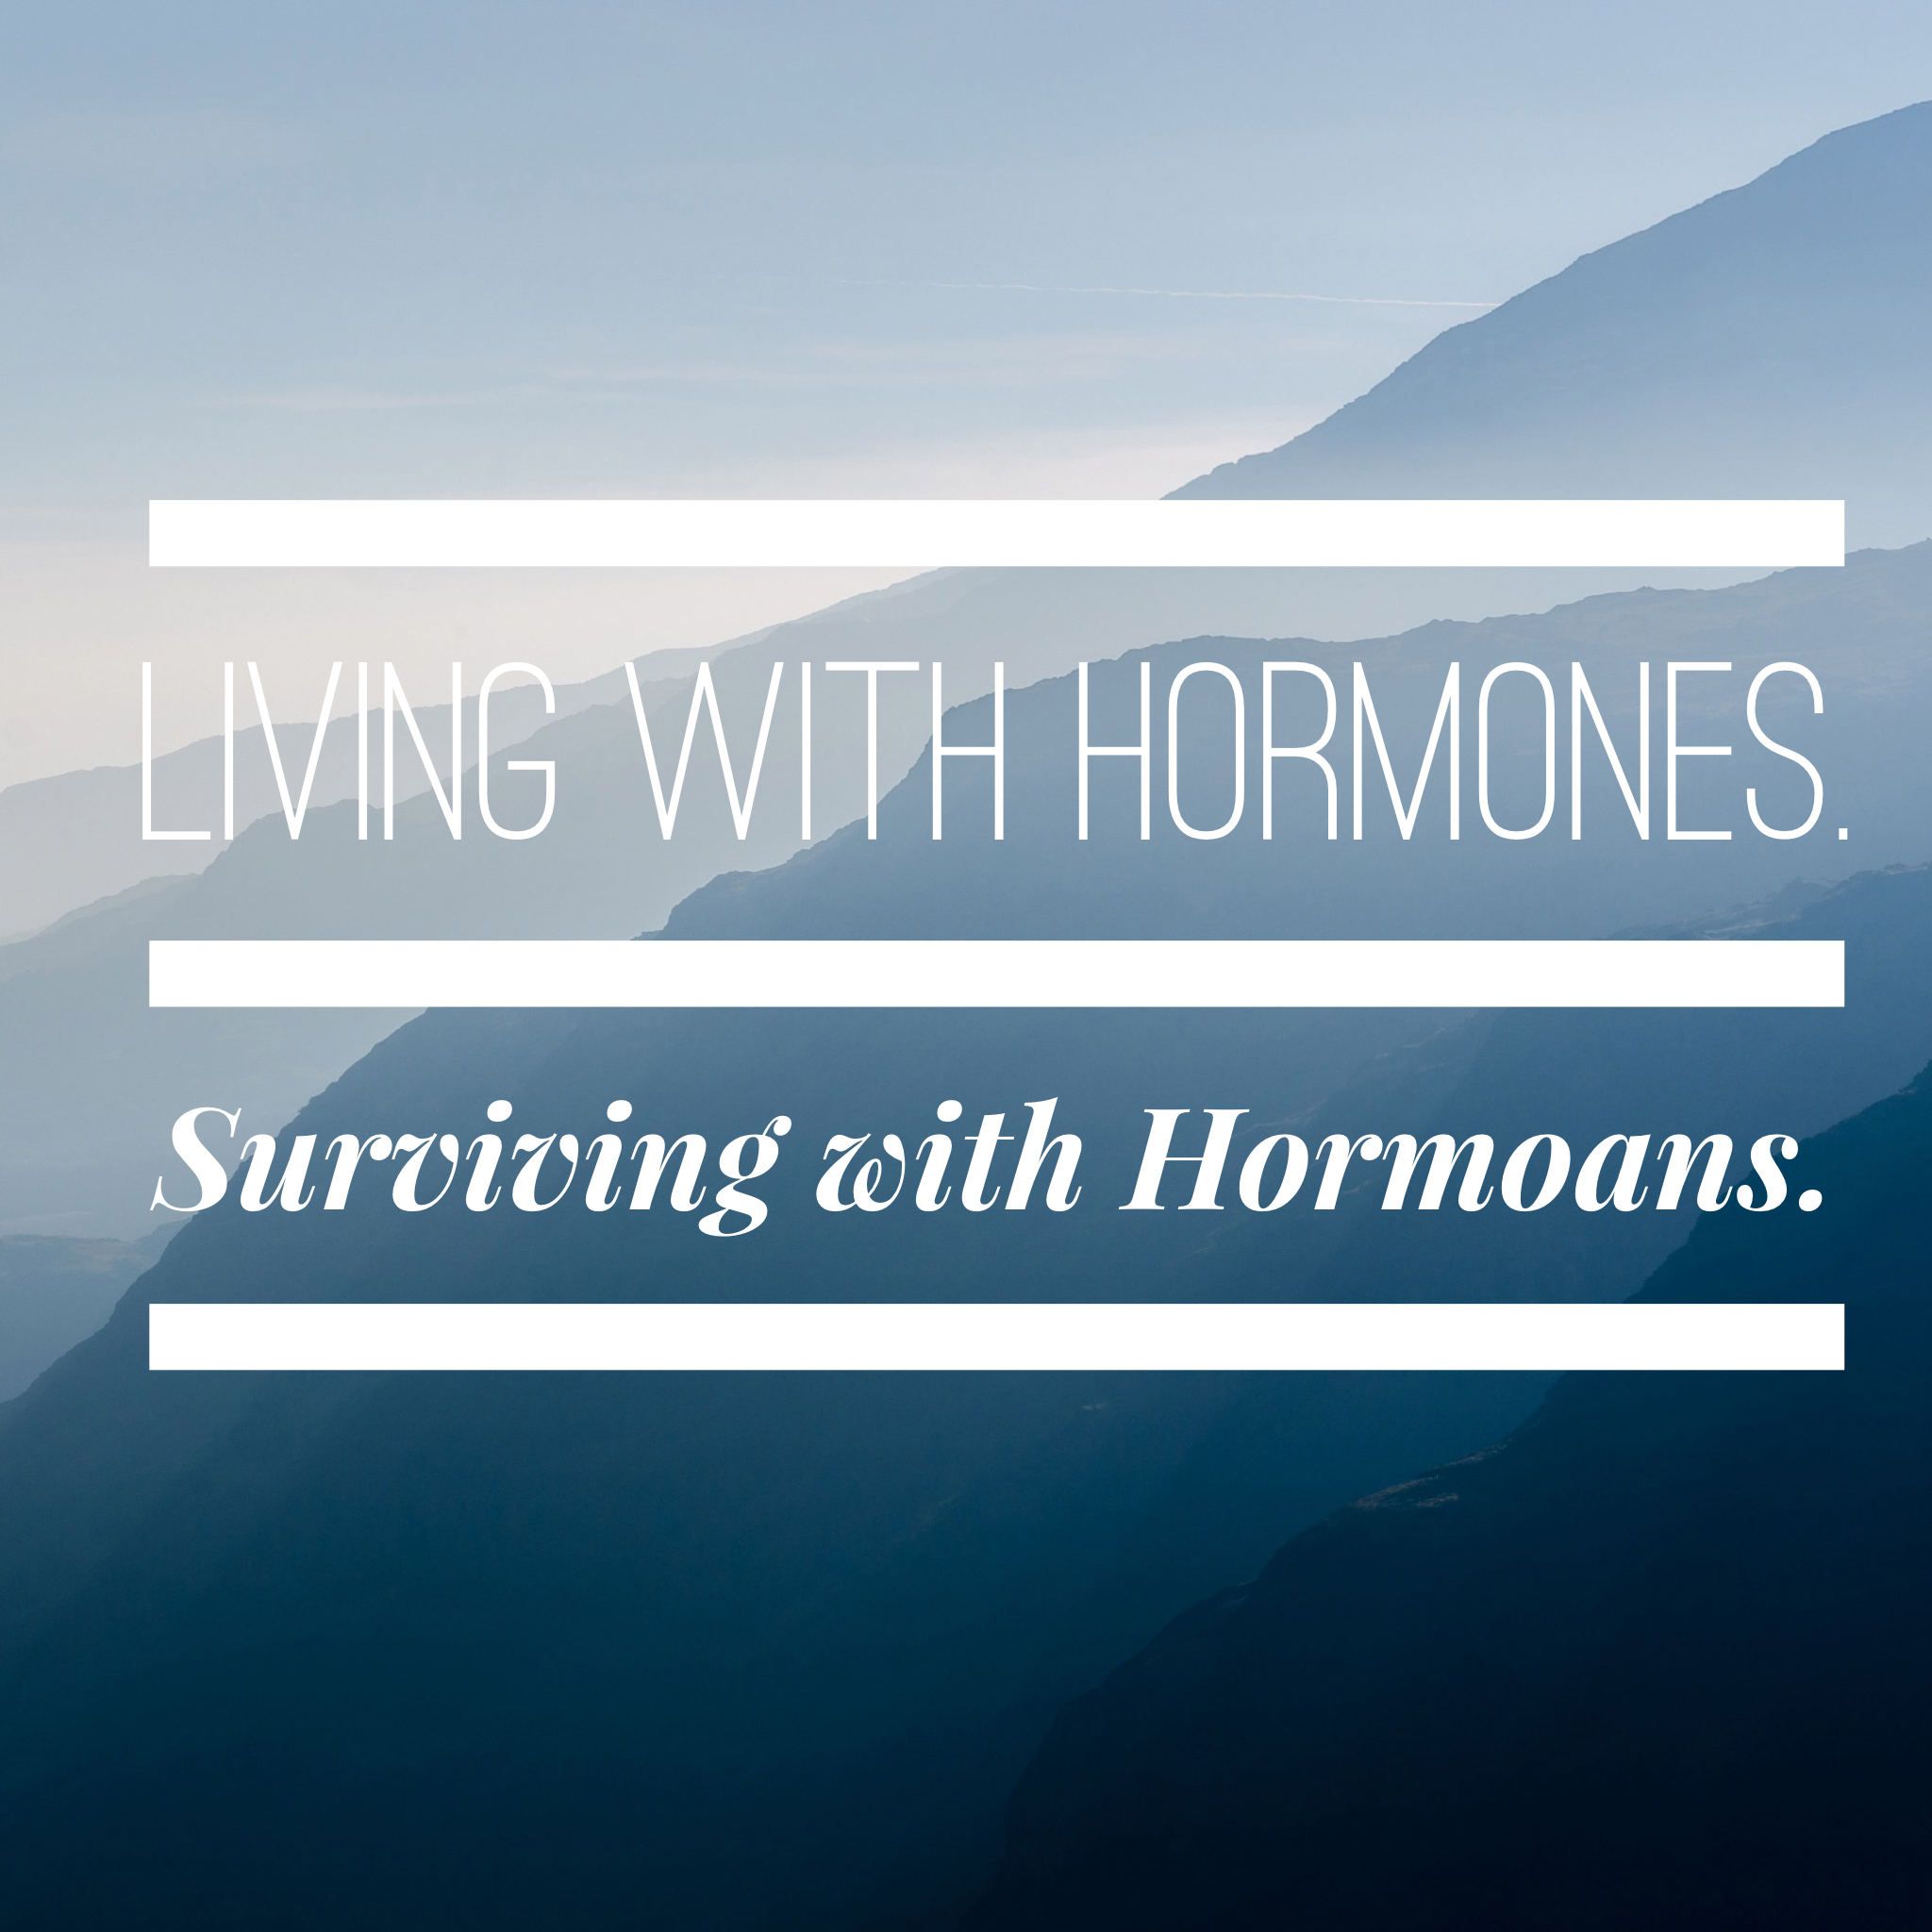 living with Hormones. Surviving with Hormones. A lighthearted look at those monthly hormones that plague the lives of women.